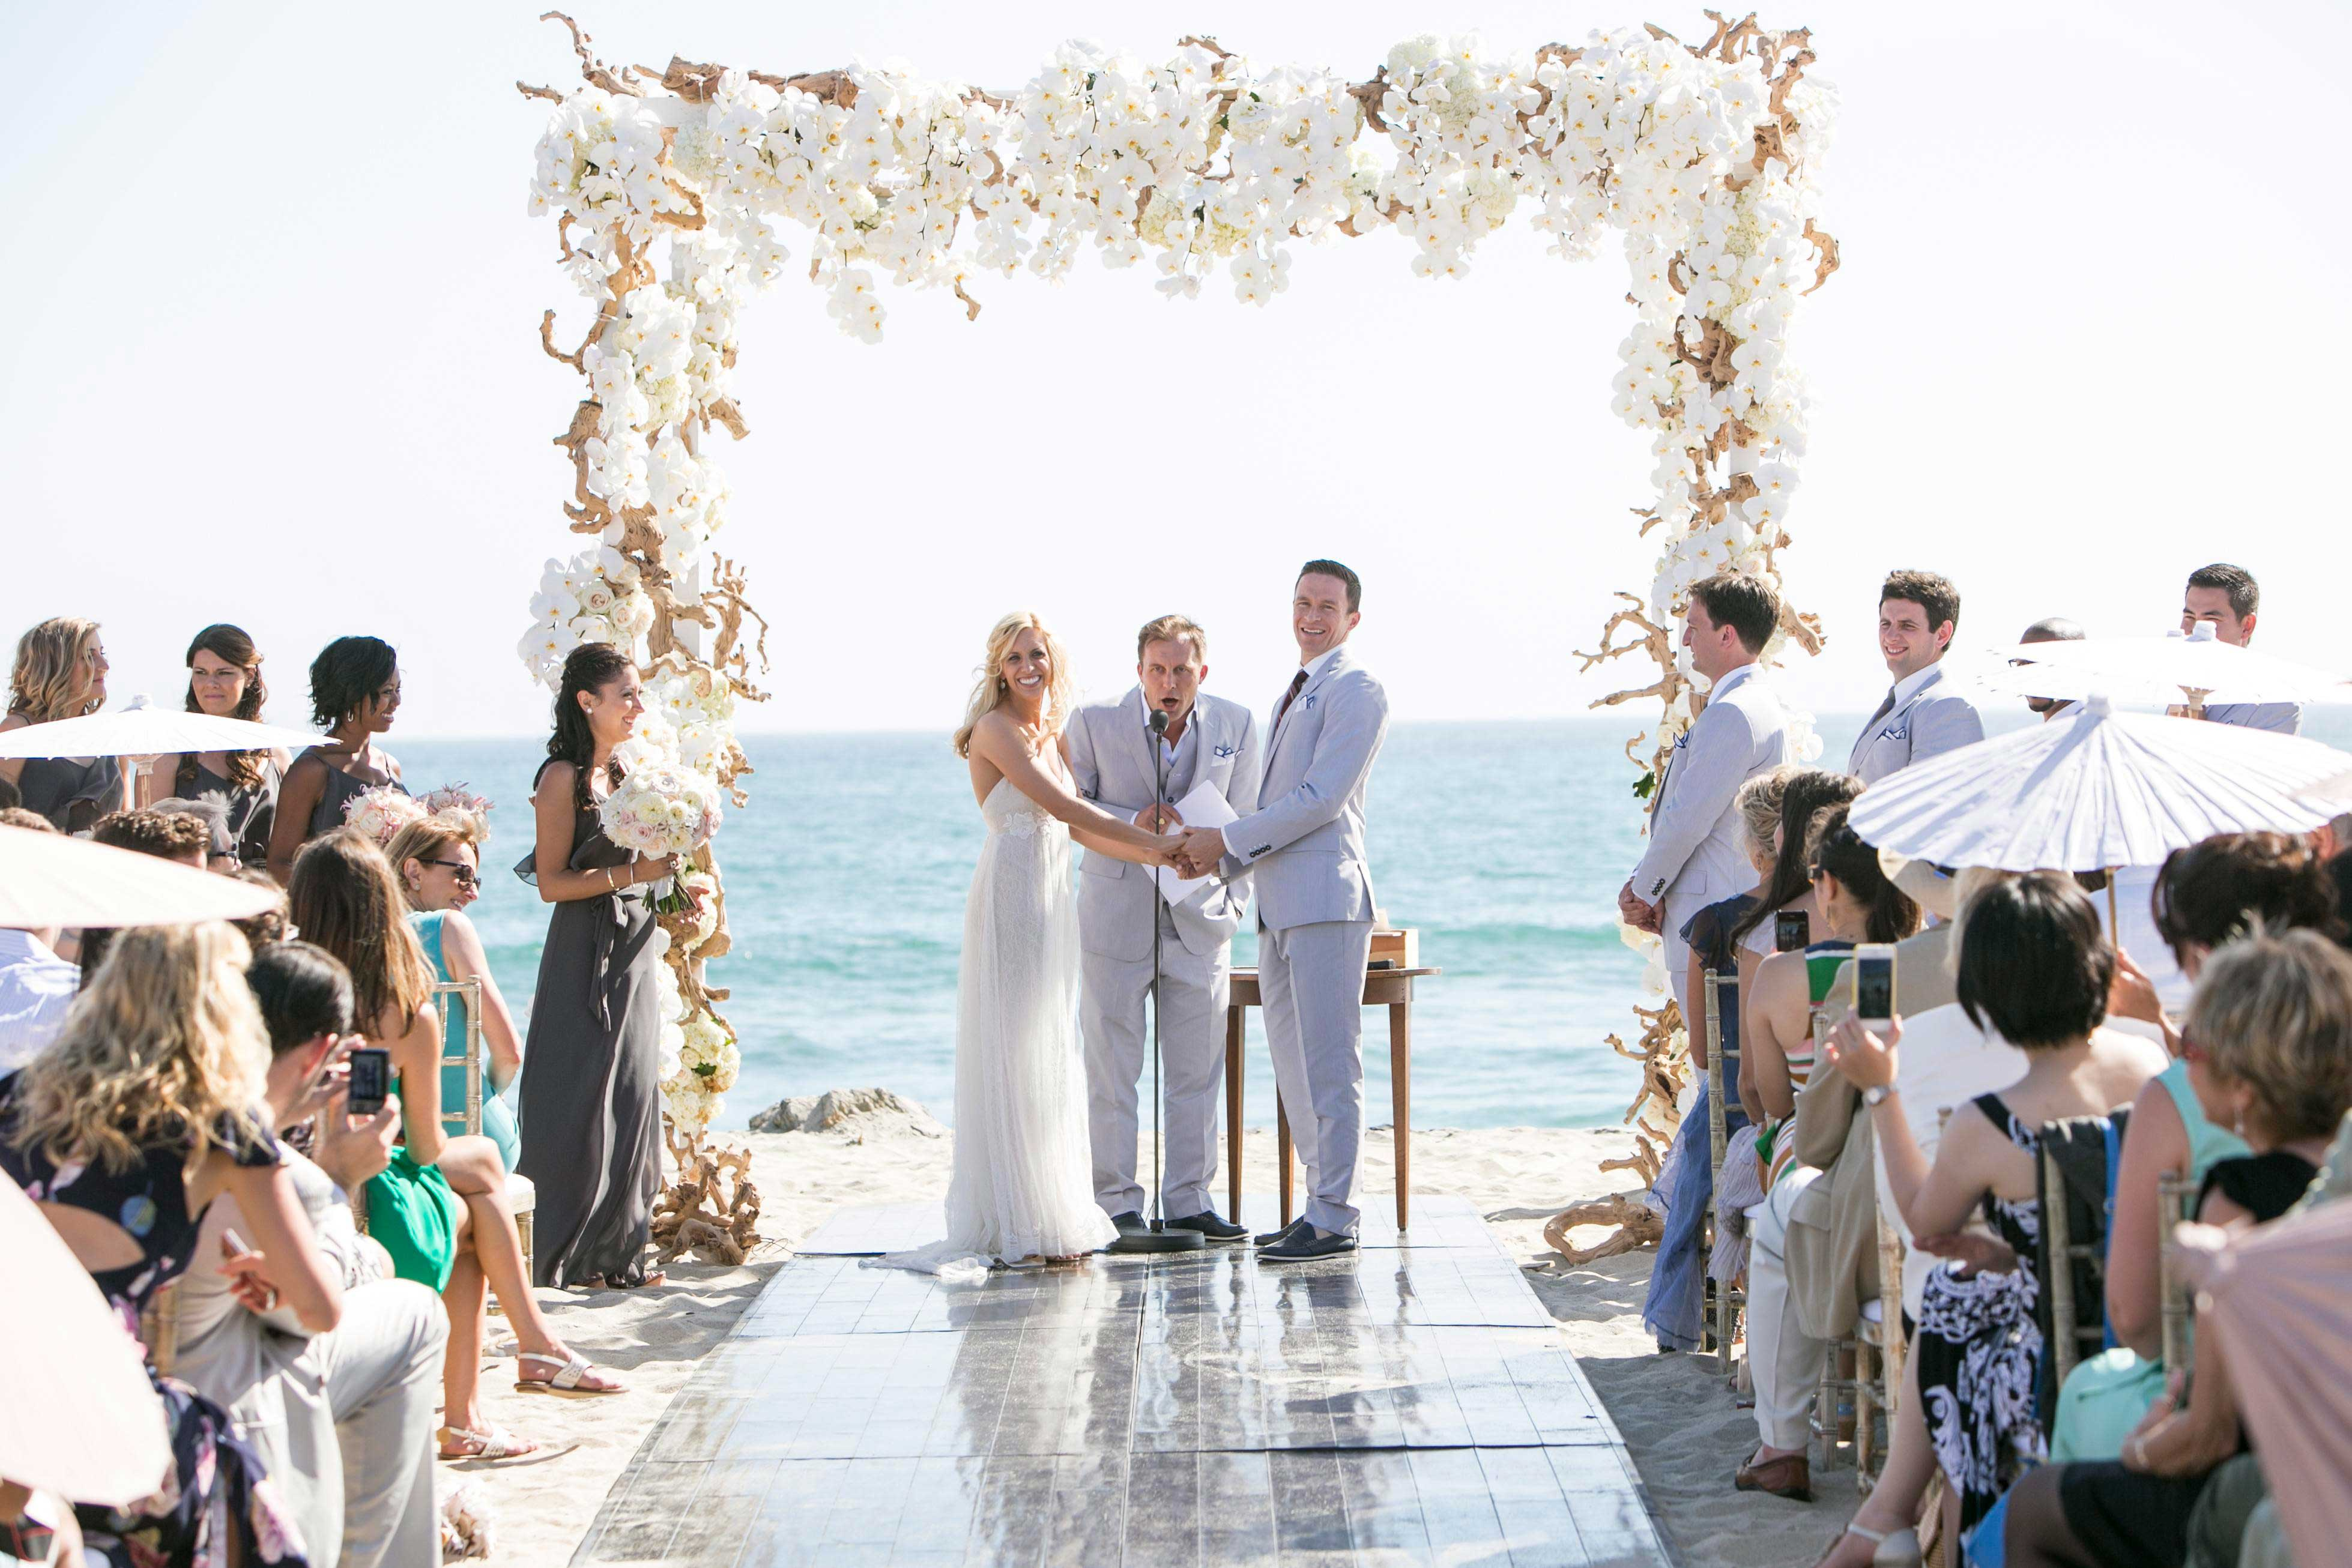 Bride and groom at beach wedding